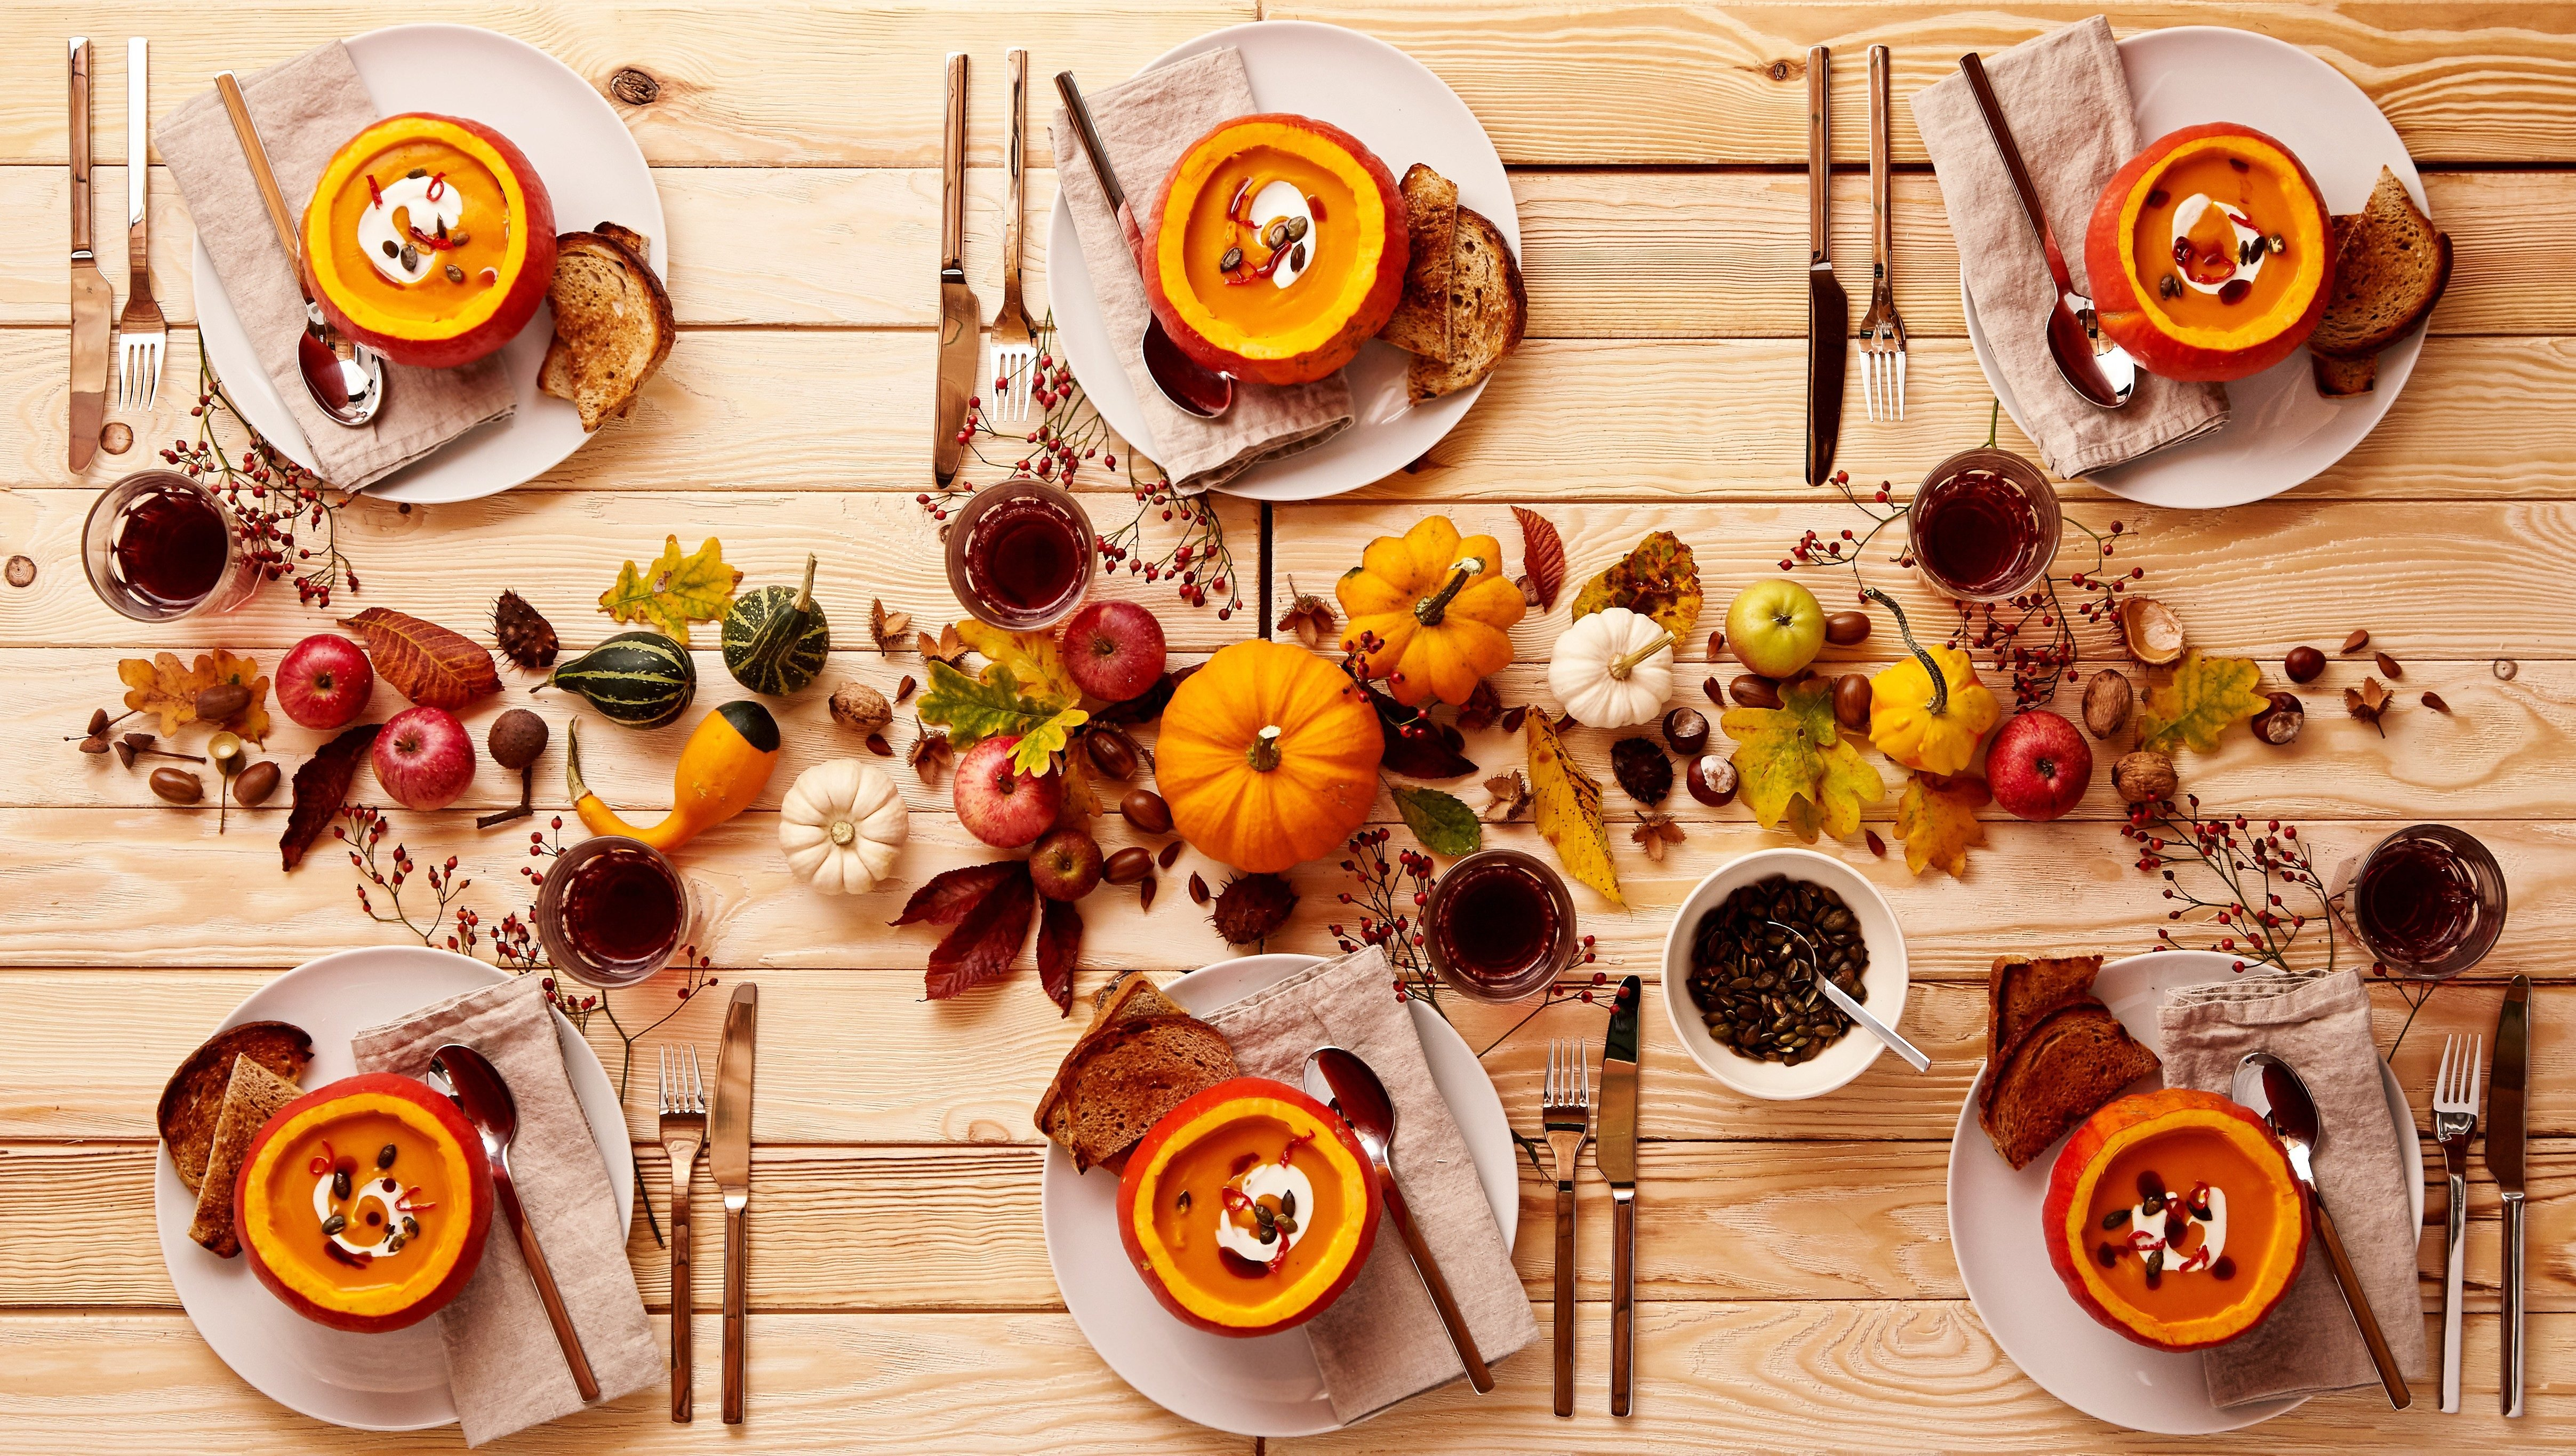 Top down view on place setting of pumpkin soup and cider on wooden table. Dinner or lunch for a party of six.